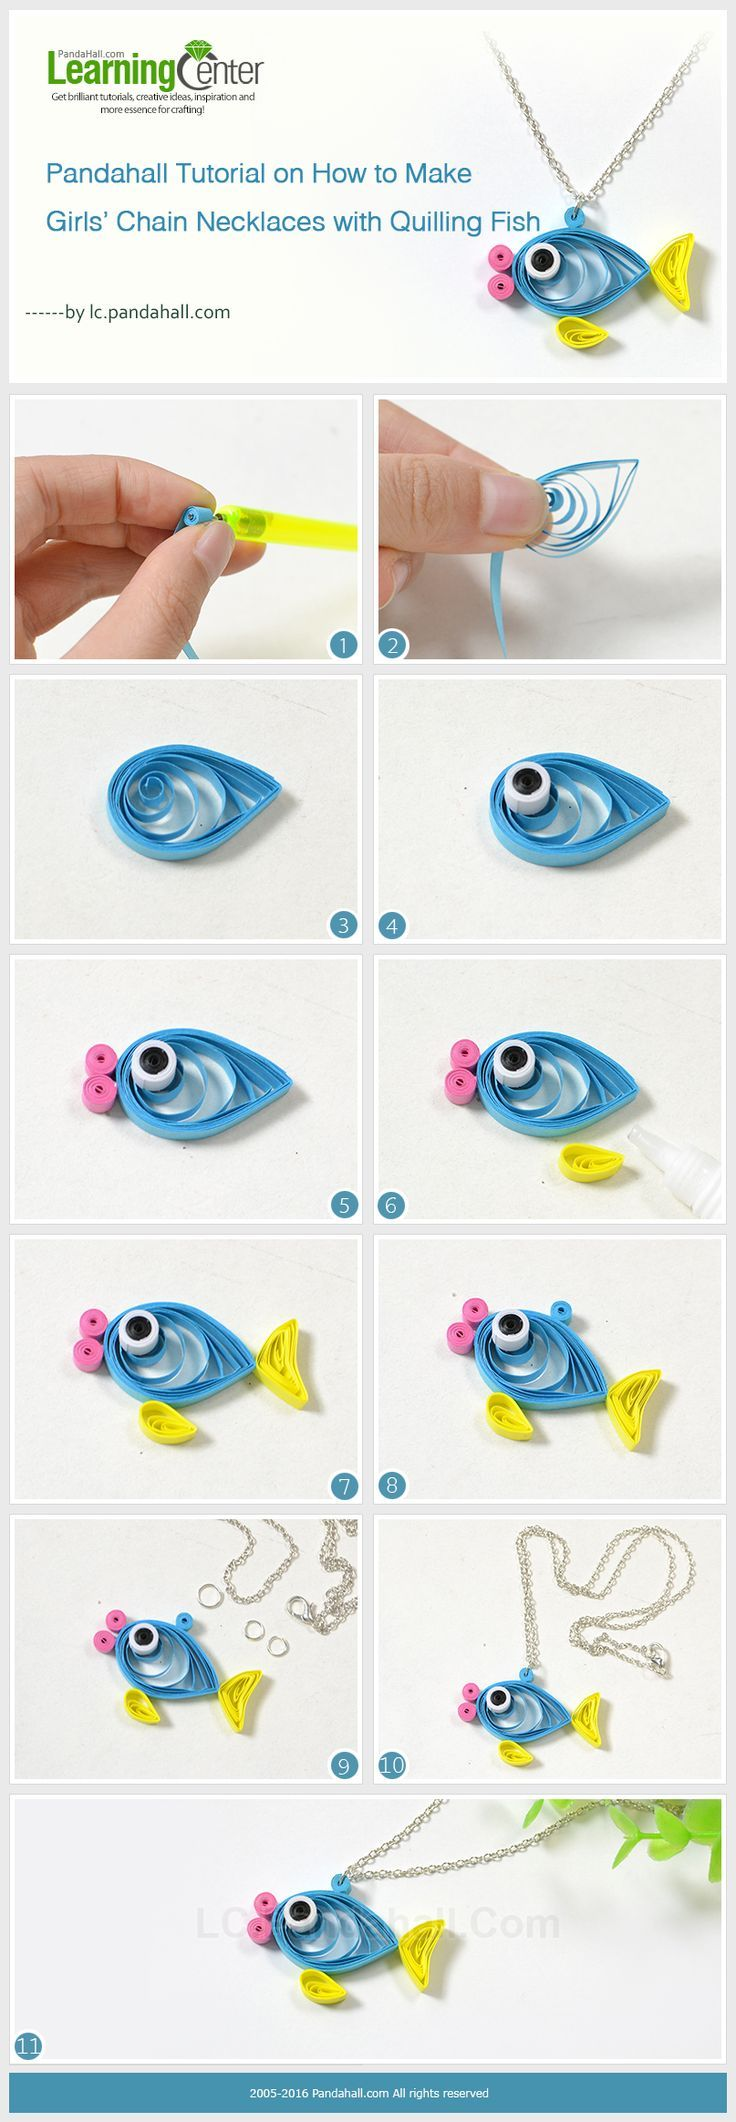 Pandahall Tutorial on How to Make Girls' Chain Necklaces with Quilling Fish